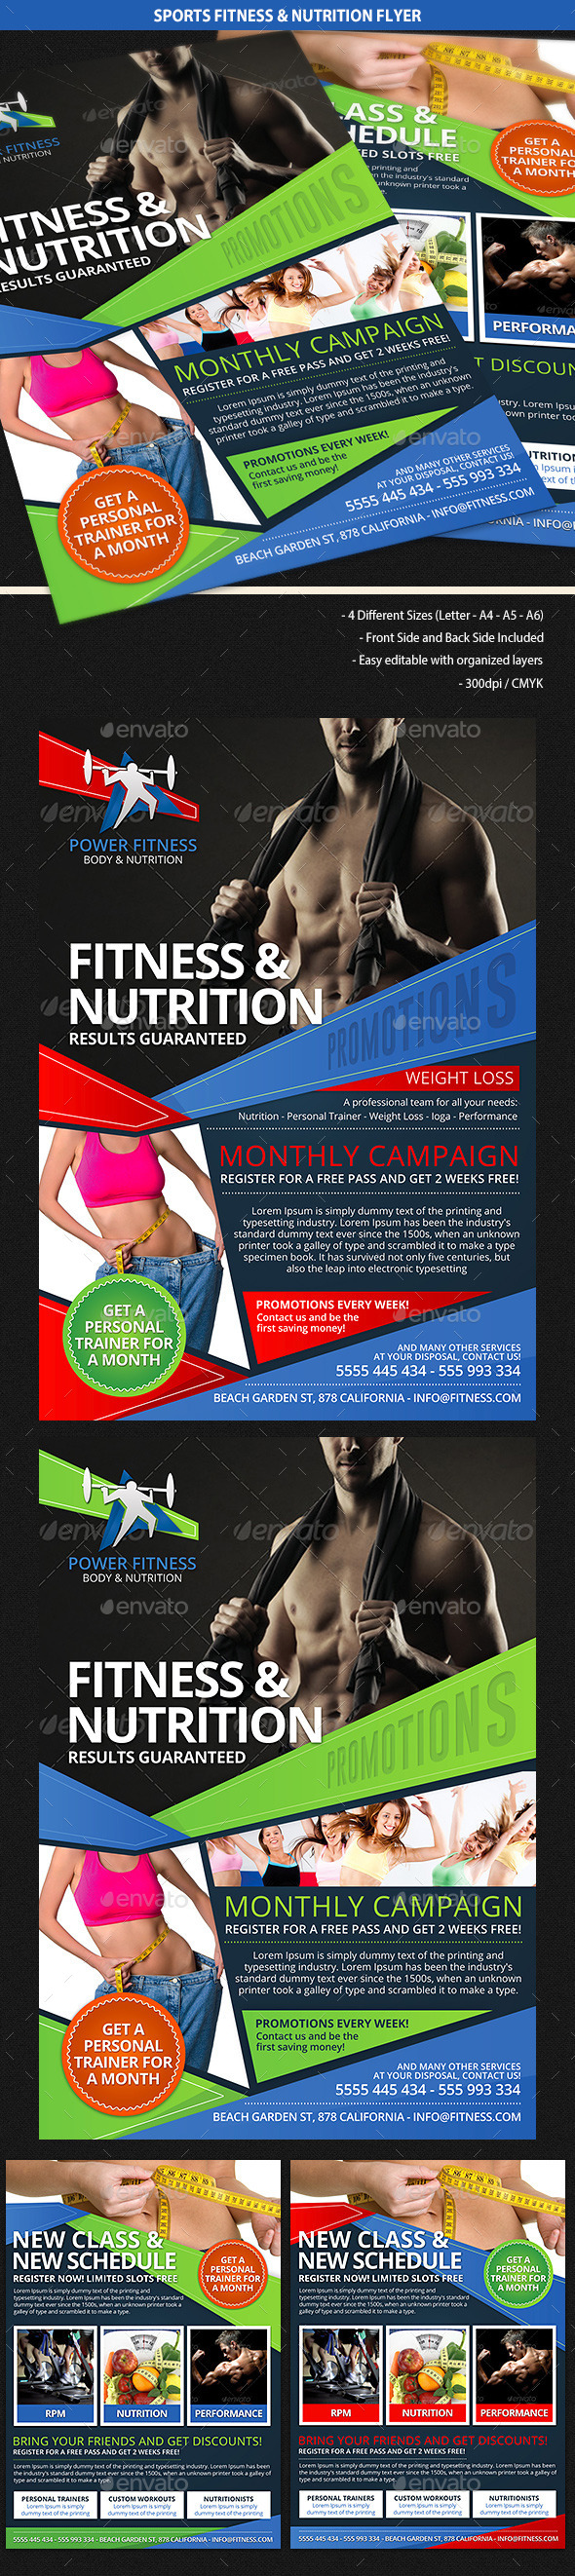 GraphicRiver Sports Fitness & Nutrition Flyer 9994510